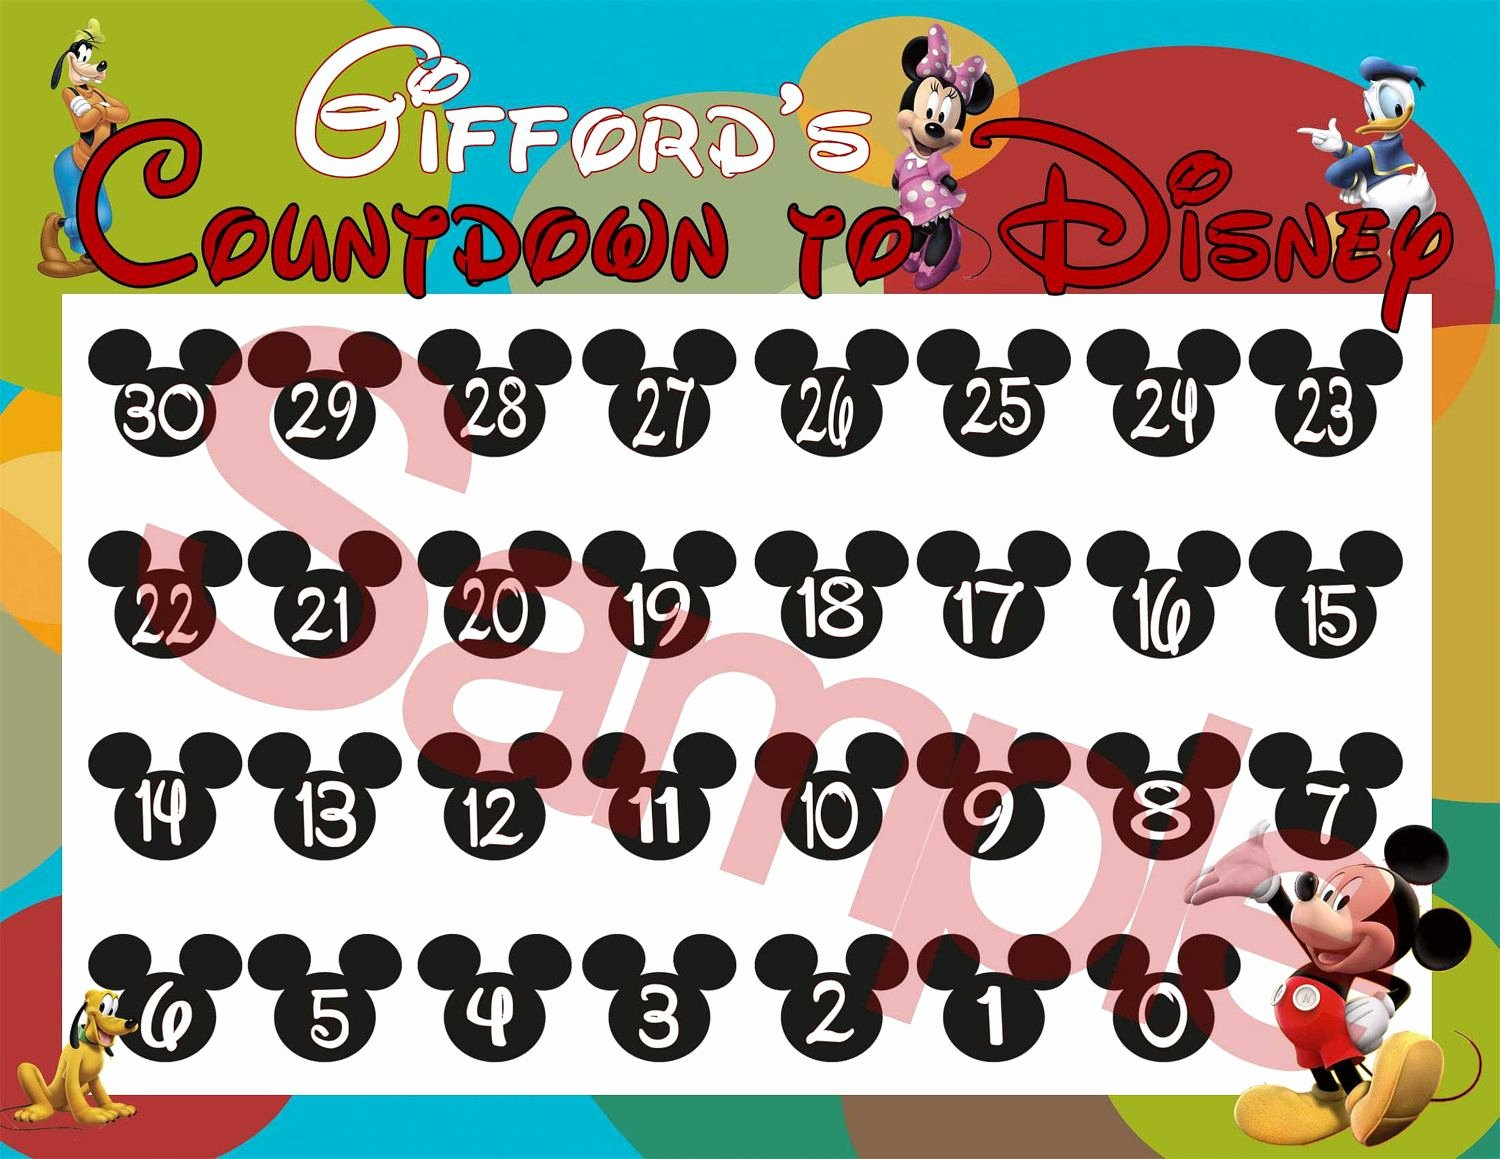 Printable Countdown Calendar Template Awesome Cute too Bad Hudson S Countdown Will Only Have One